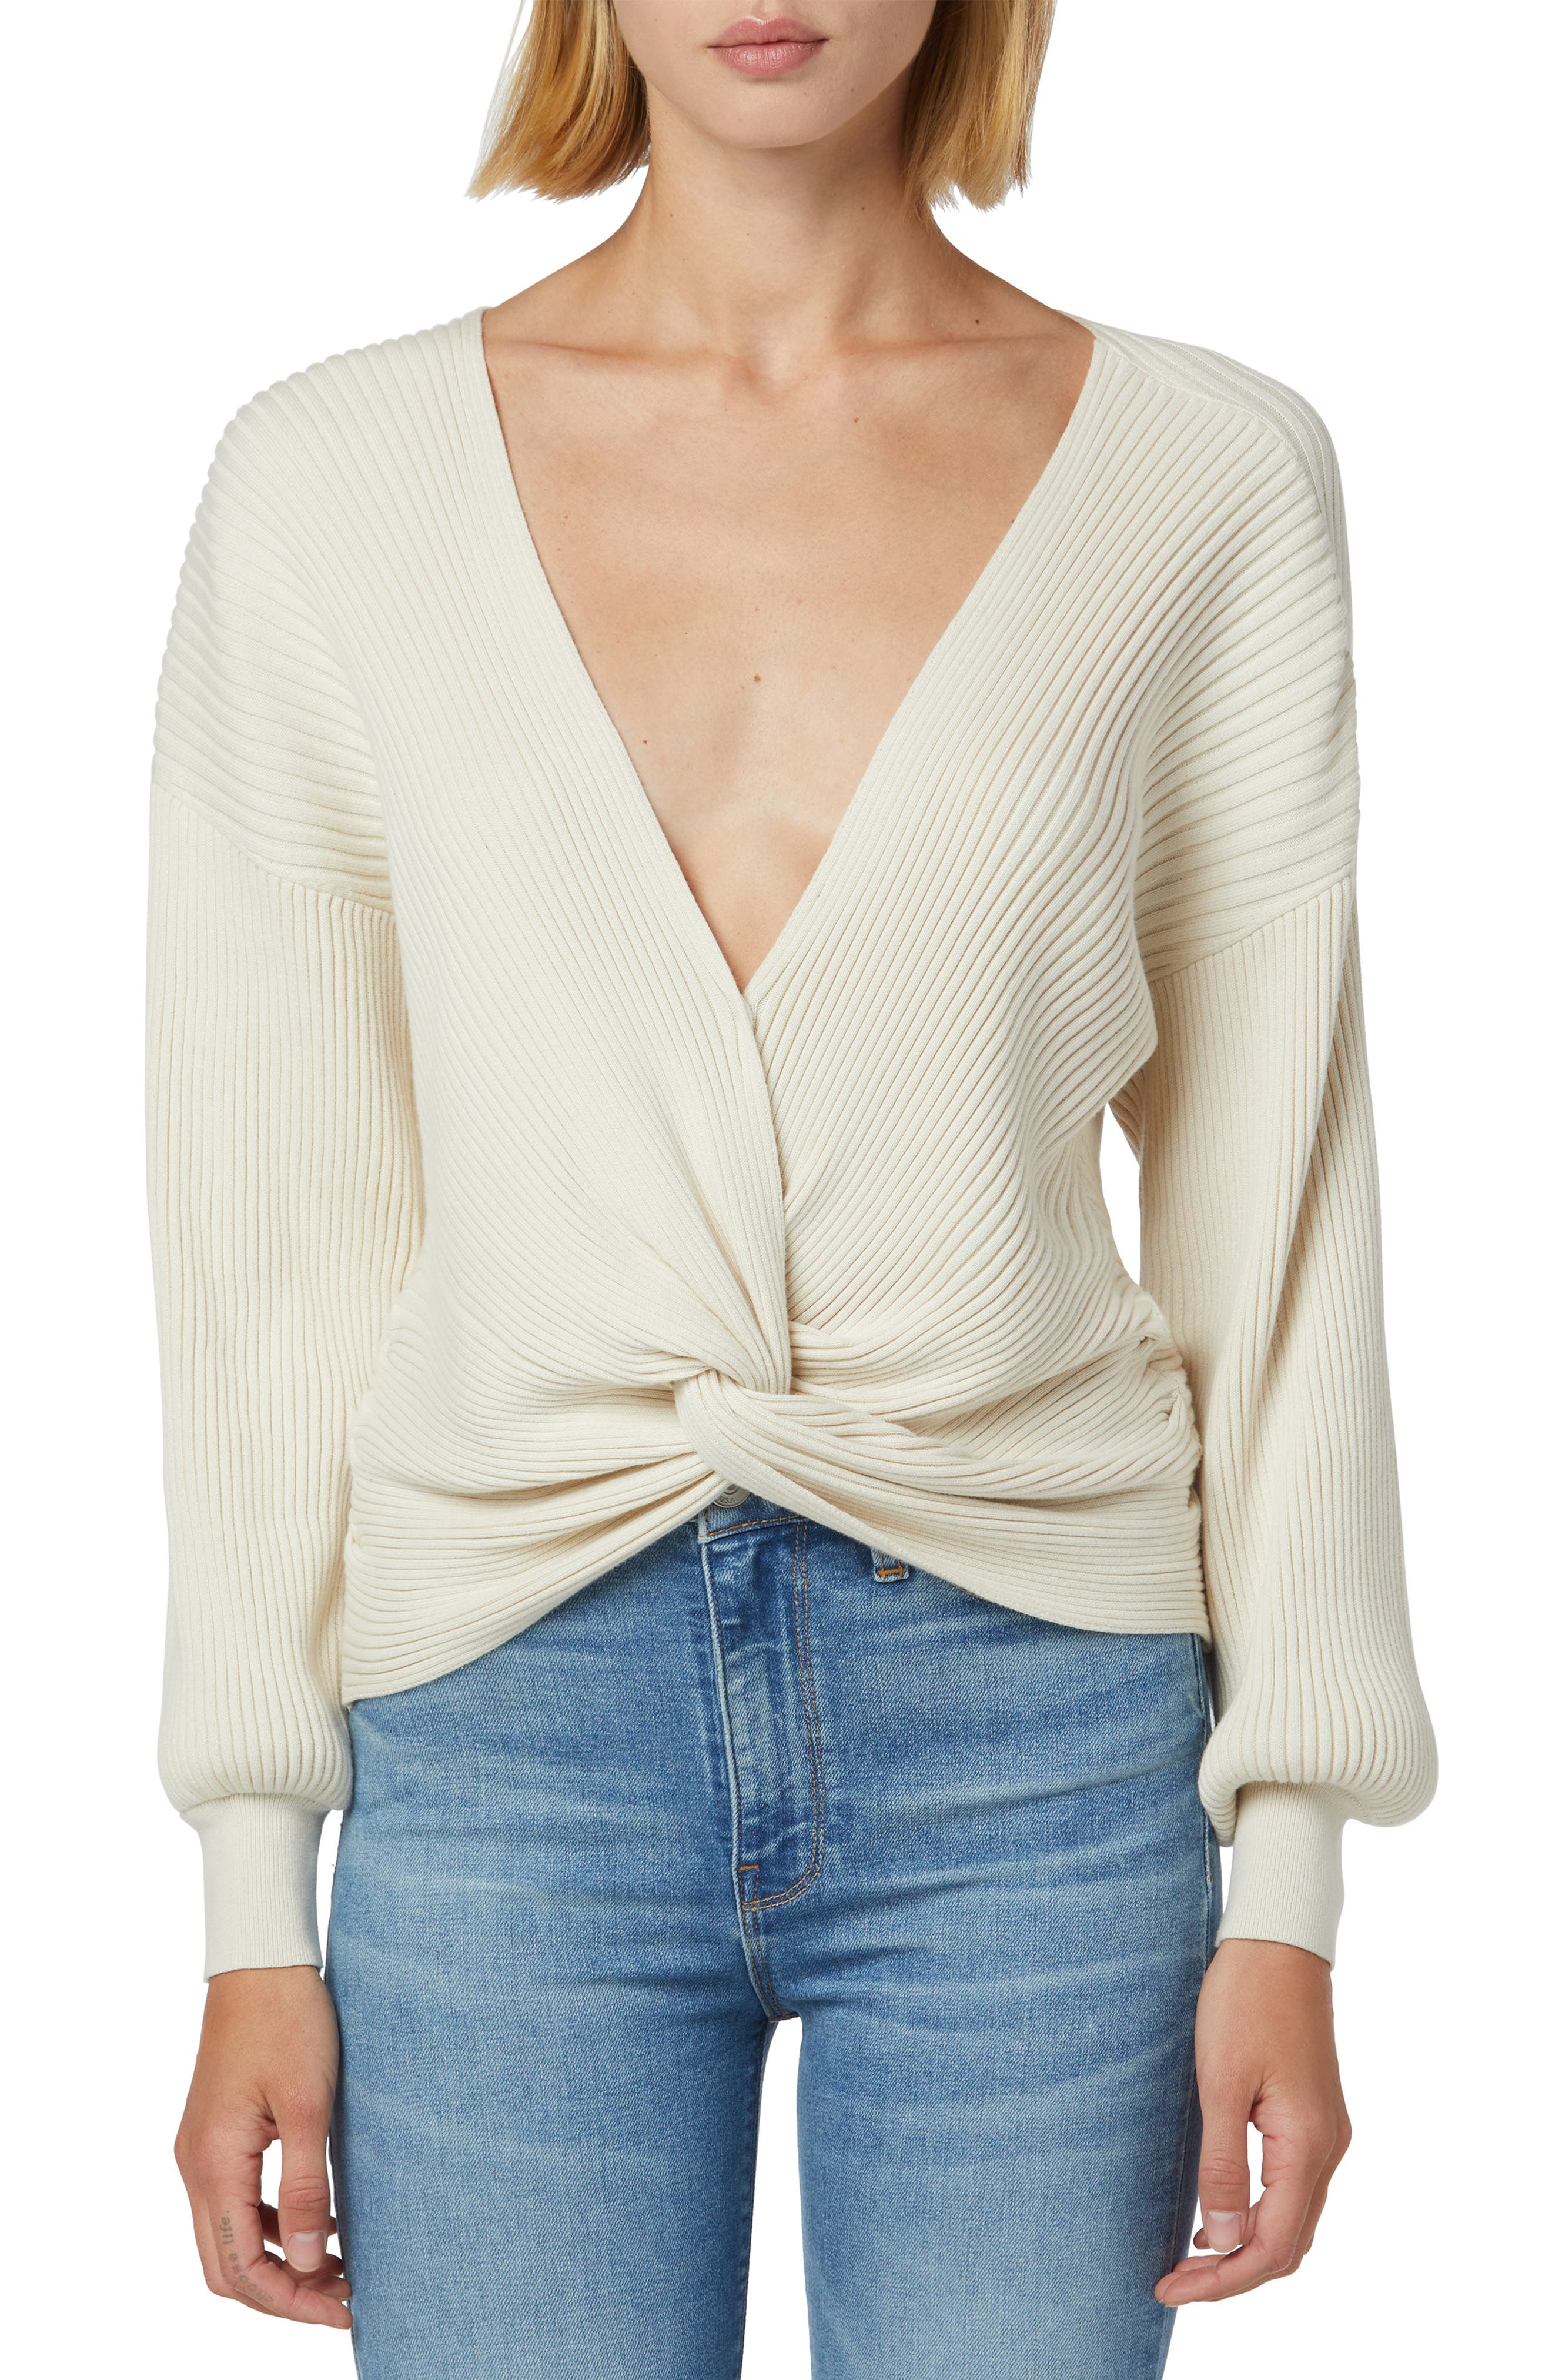 Knotted Sweater